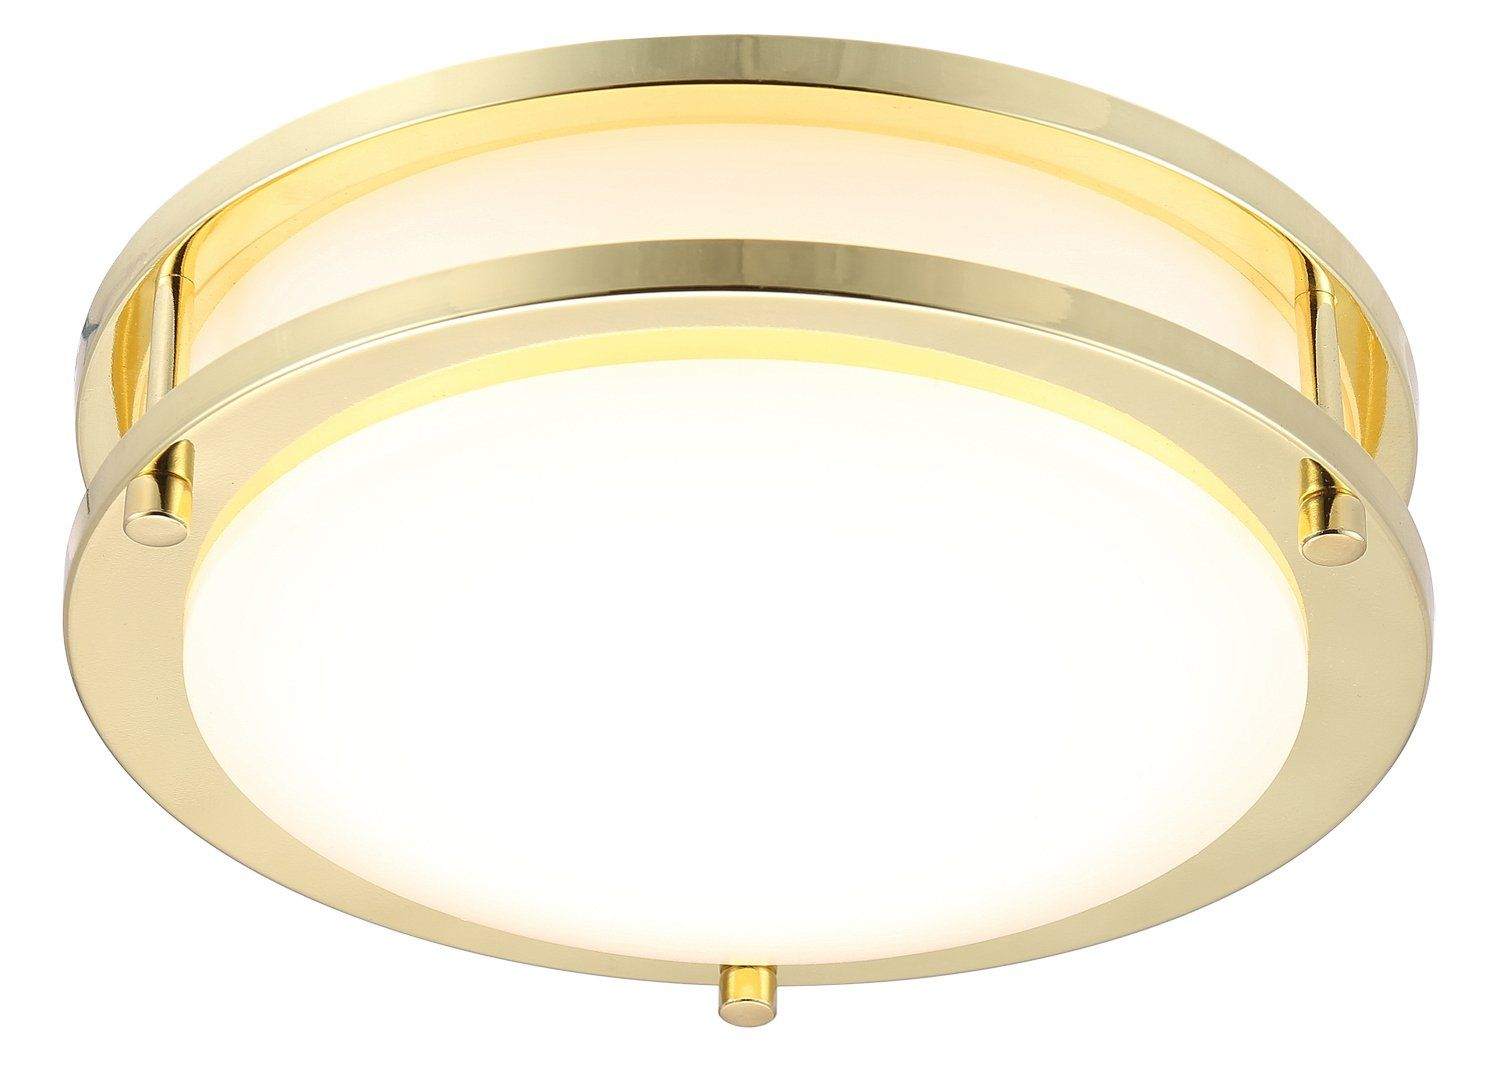 Cloudy Bay Led Flush Mount Ceiling Light 10 Inch 17w 120w Equivalent Dimmable 1150lm 3000k Warm Flush Mount Ceiling Lights Ceiling Lights Round Light Fixture